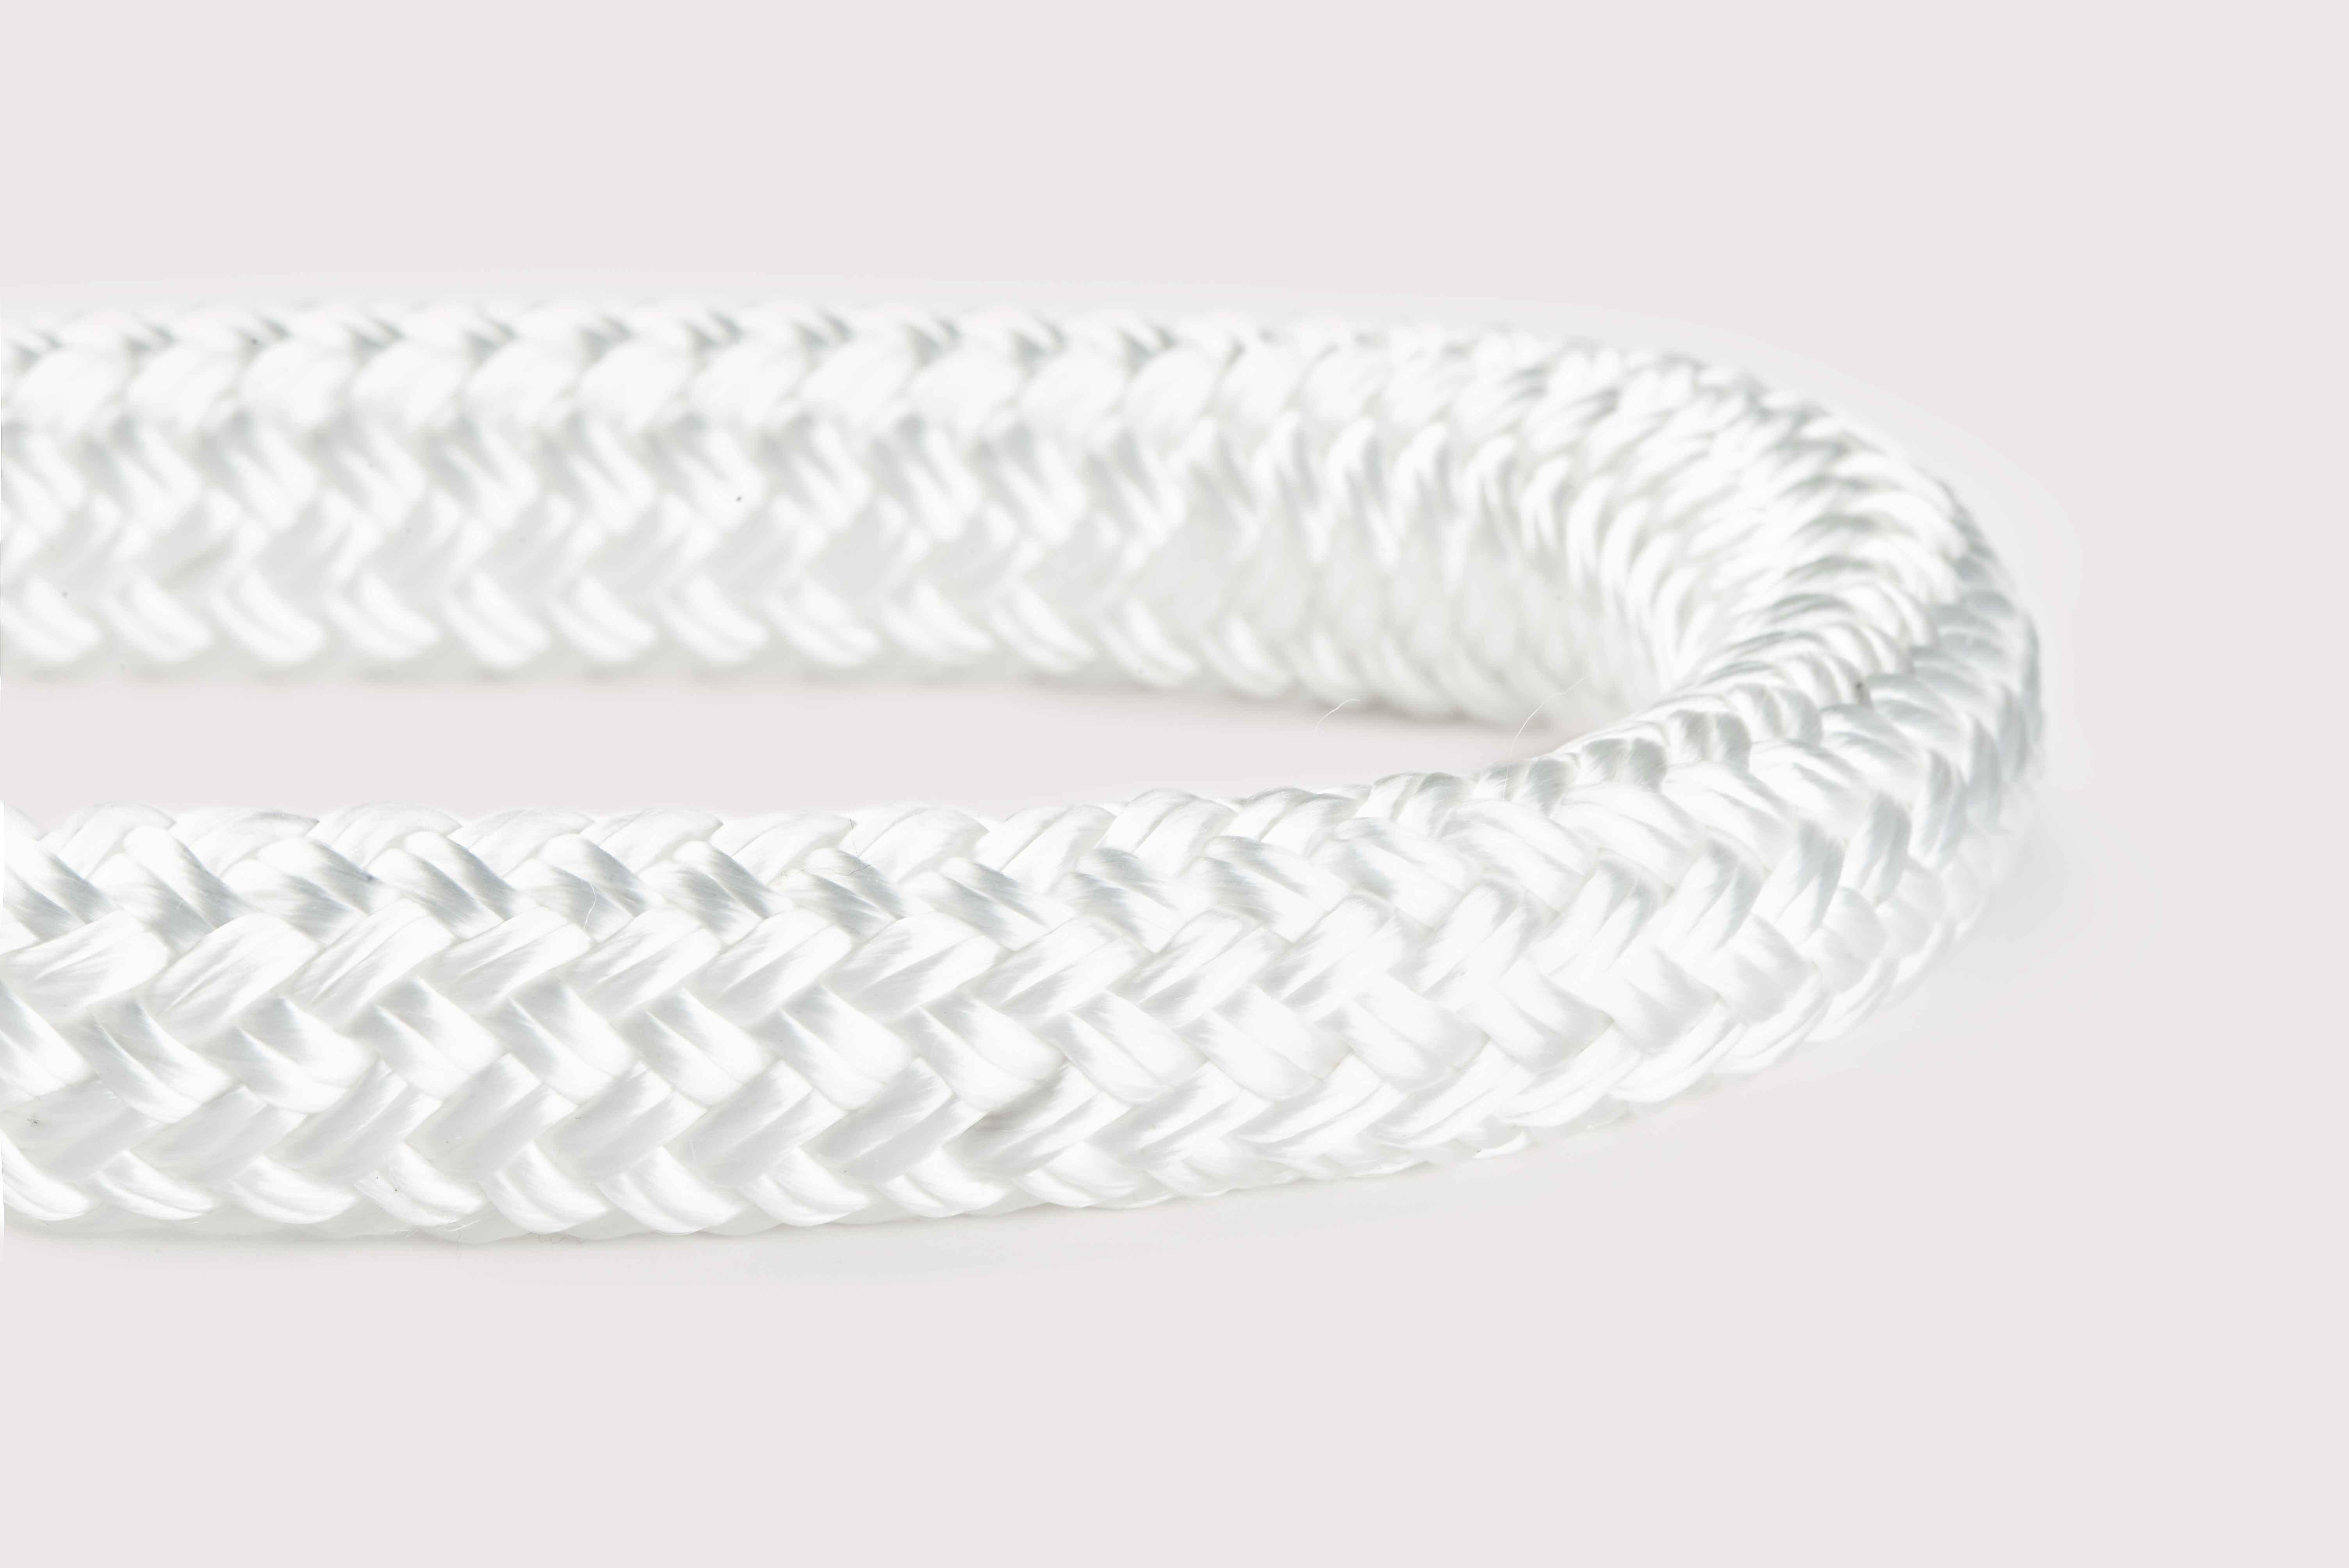 Orion-Cordage-Durastat Double Braid Polyester-White-Curved203.jpg